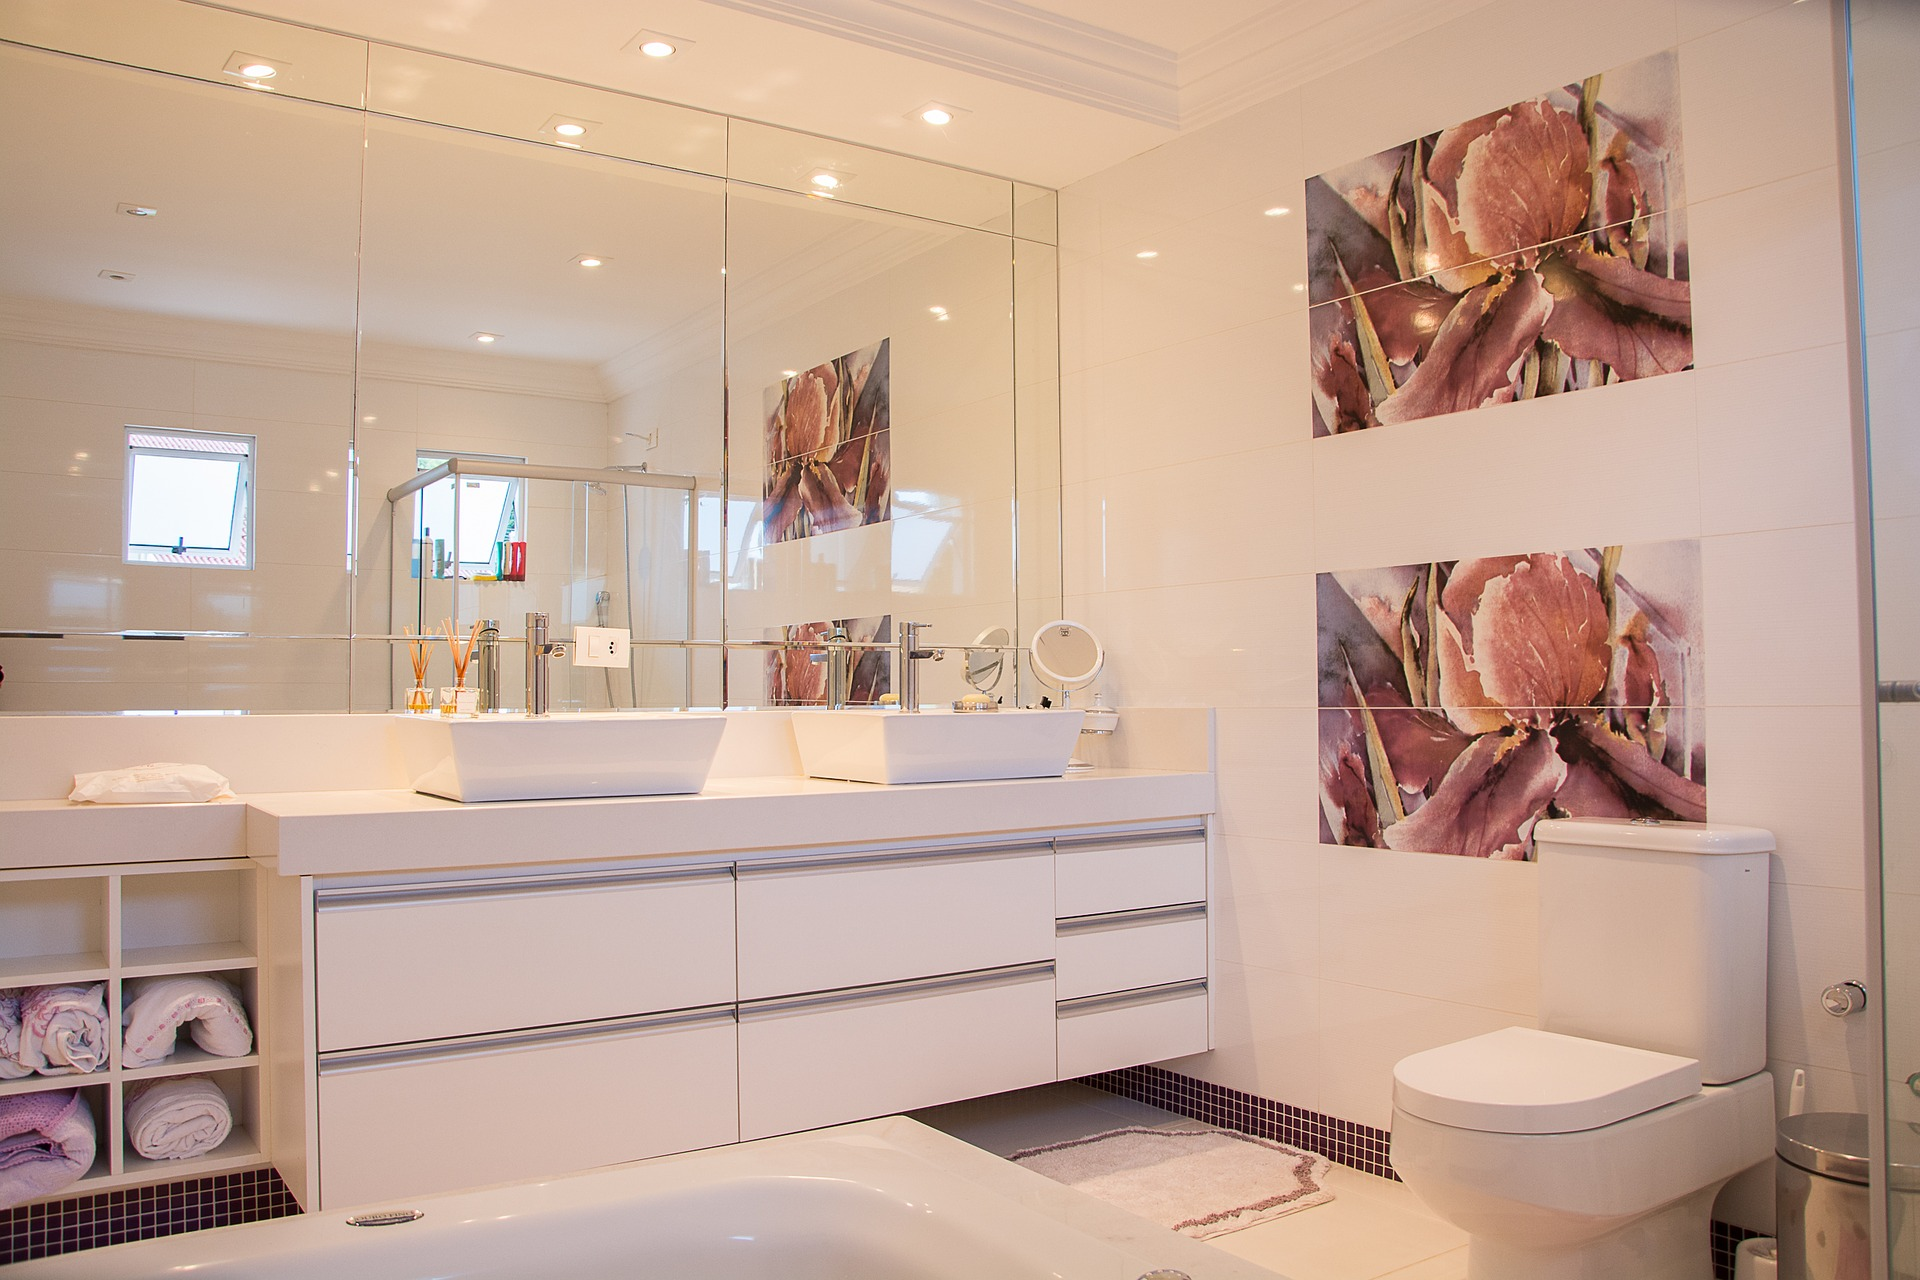 Das Bad bin ich bathroom-1622403